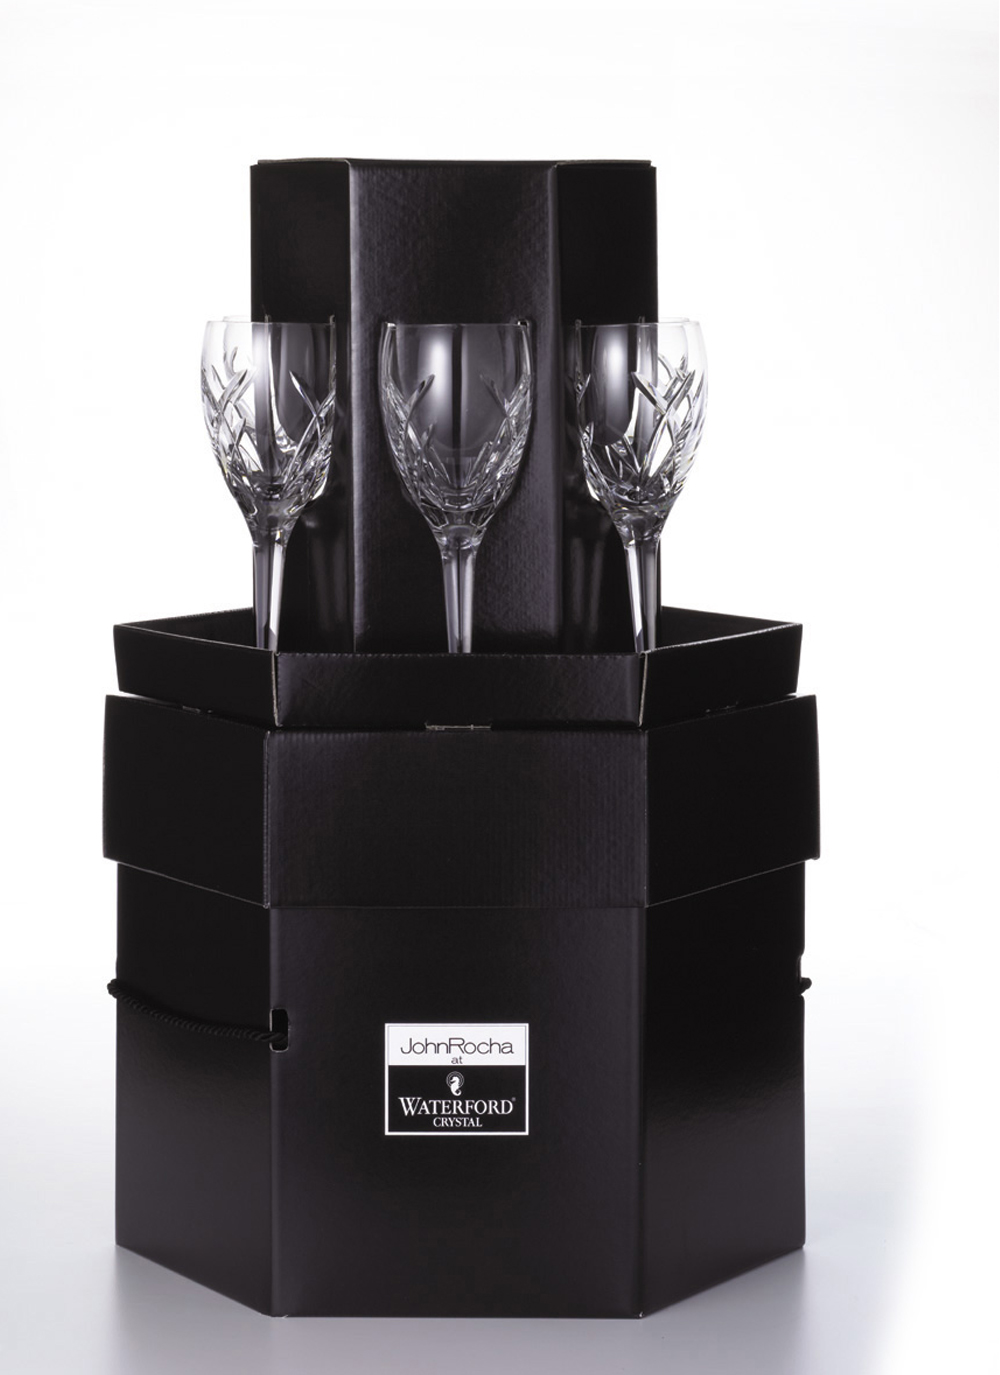 waterford crystal john rocha signature white wine giftbox - Waterford Crystal Wine Glasses